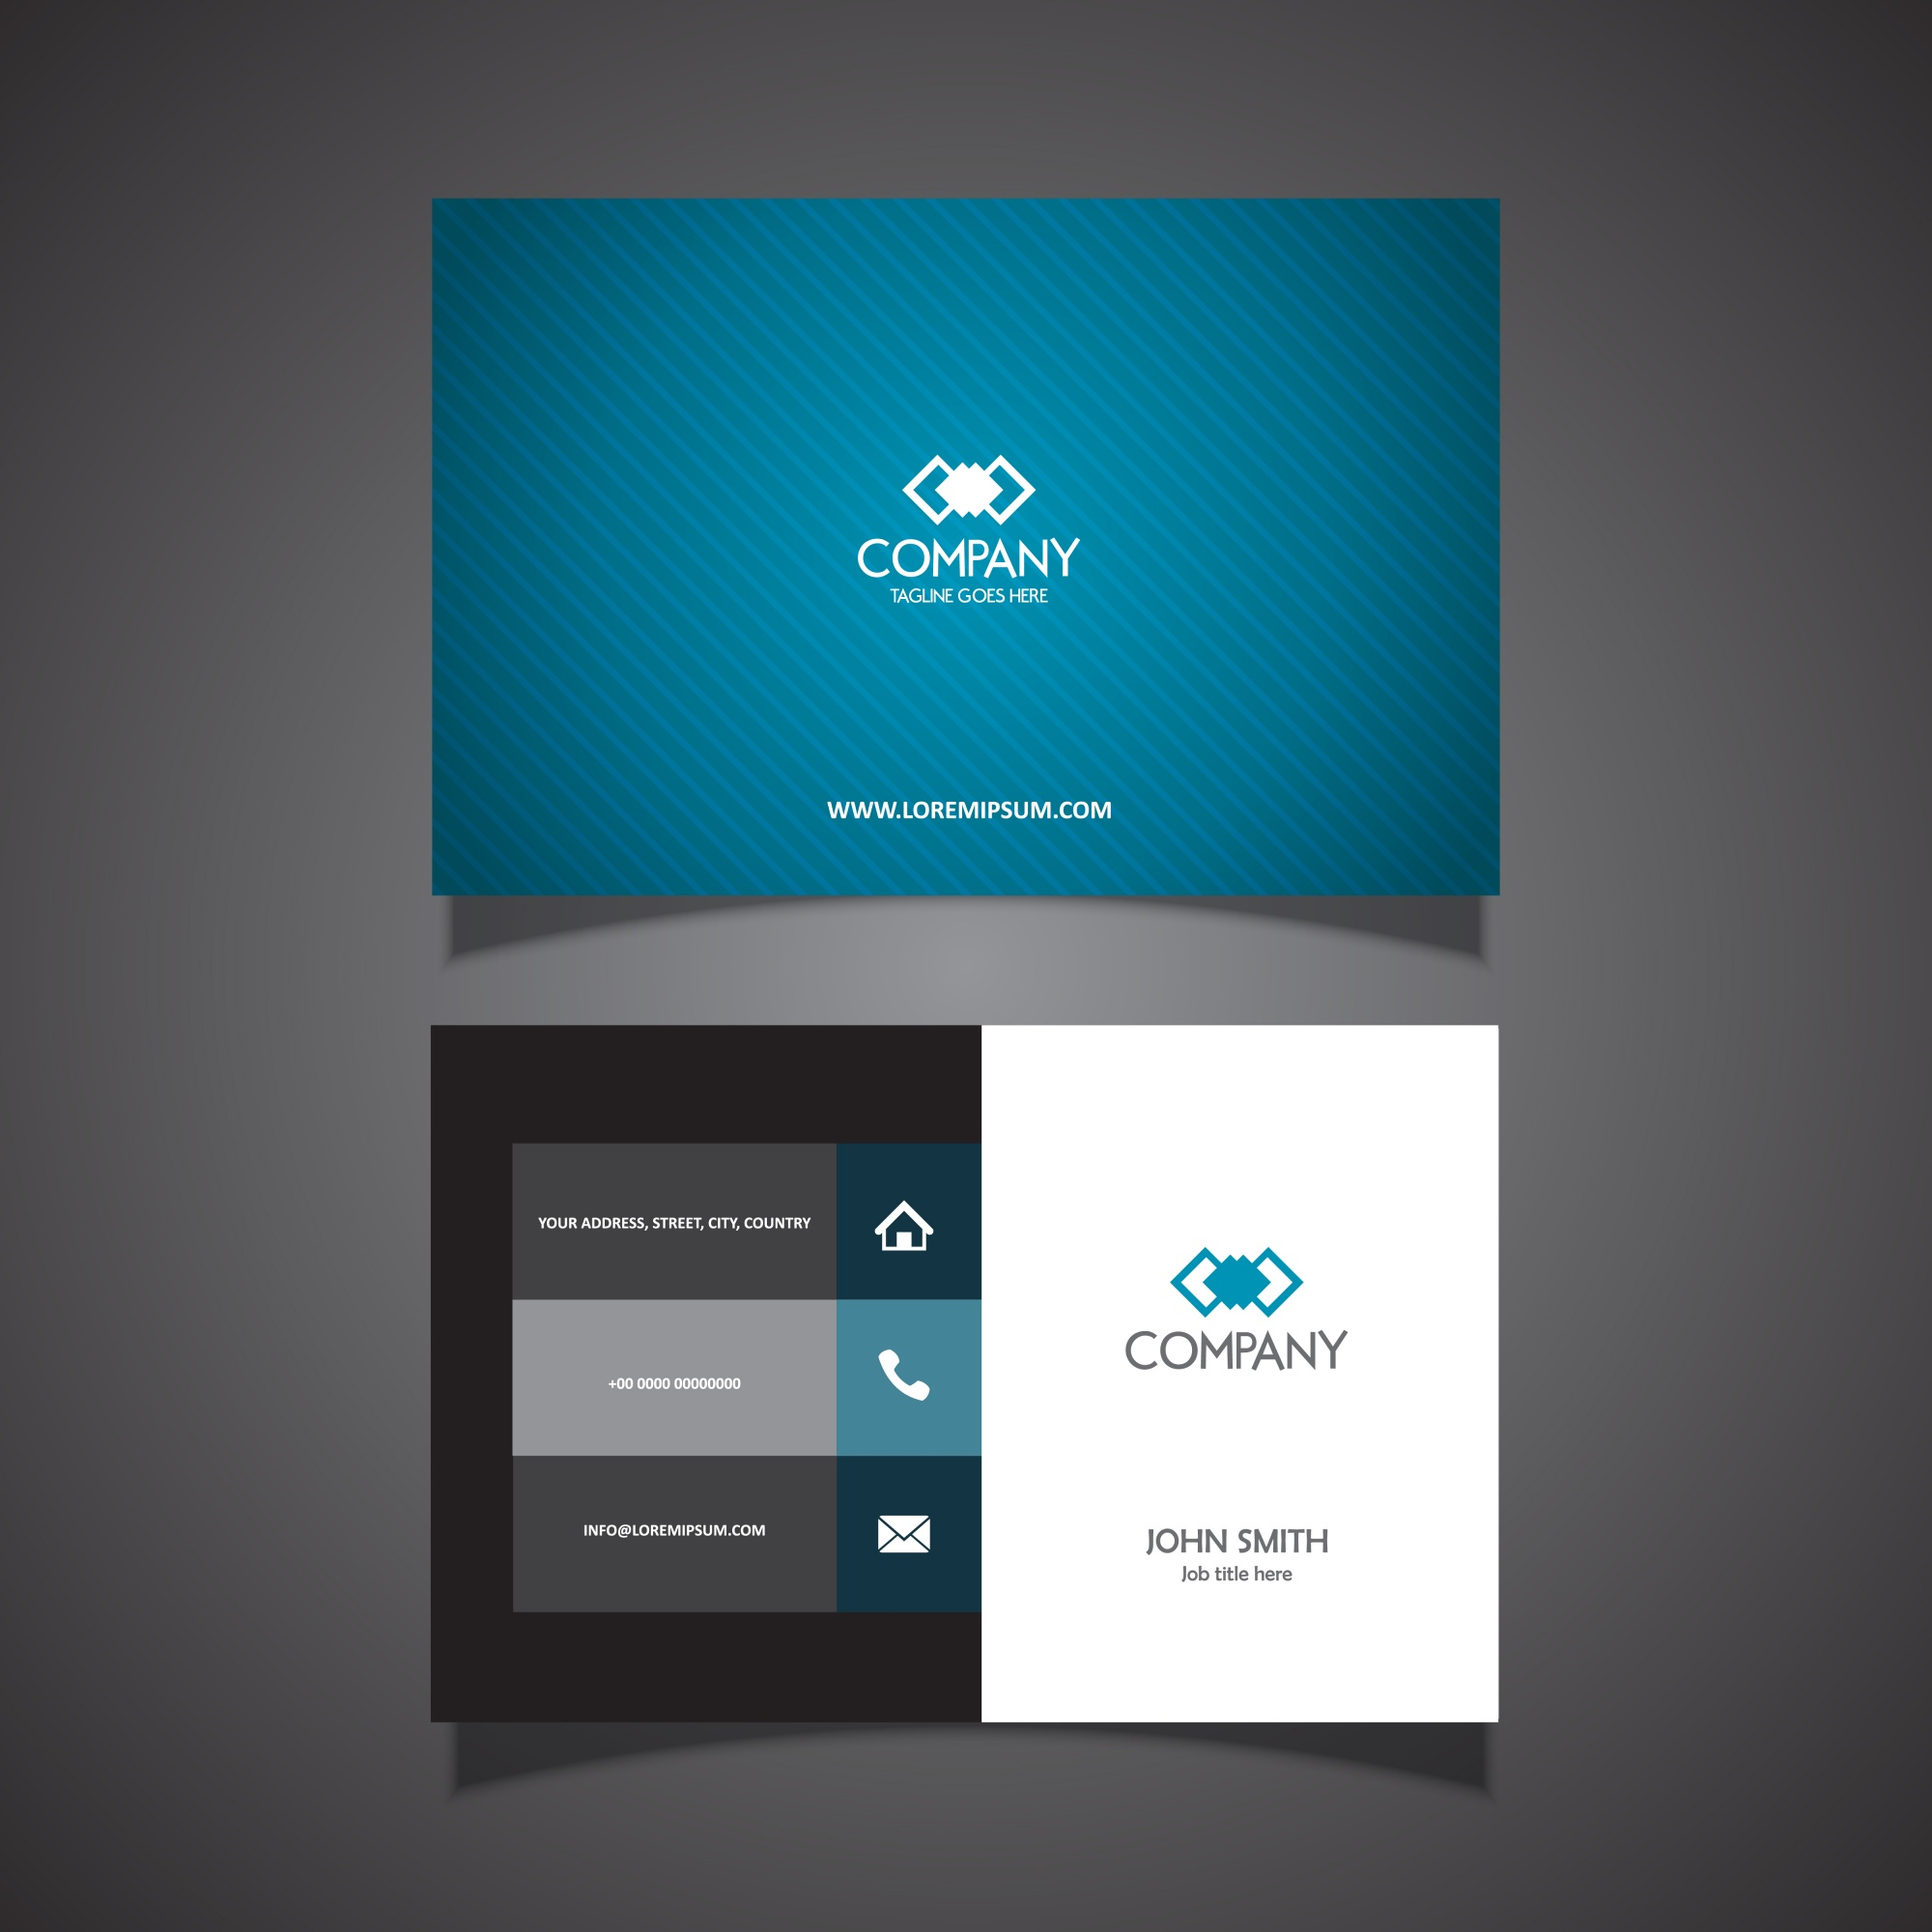 Business card with a clean modern design